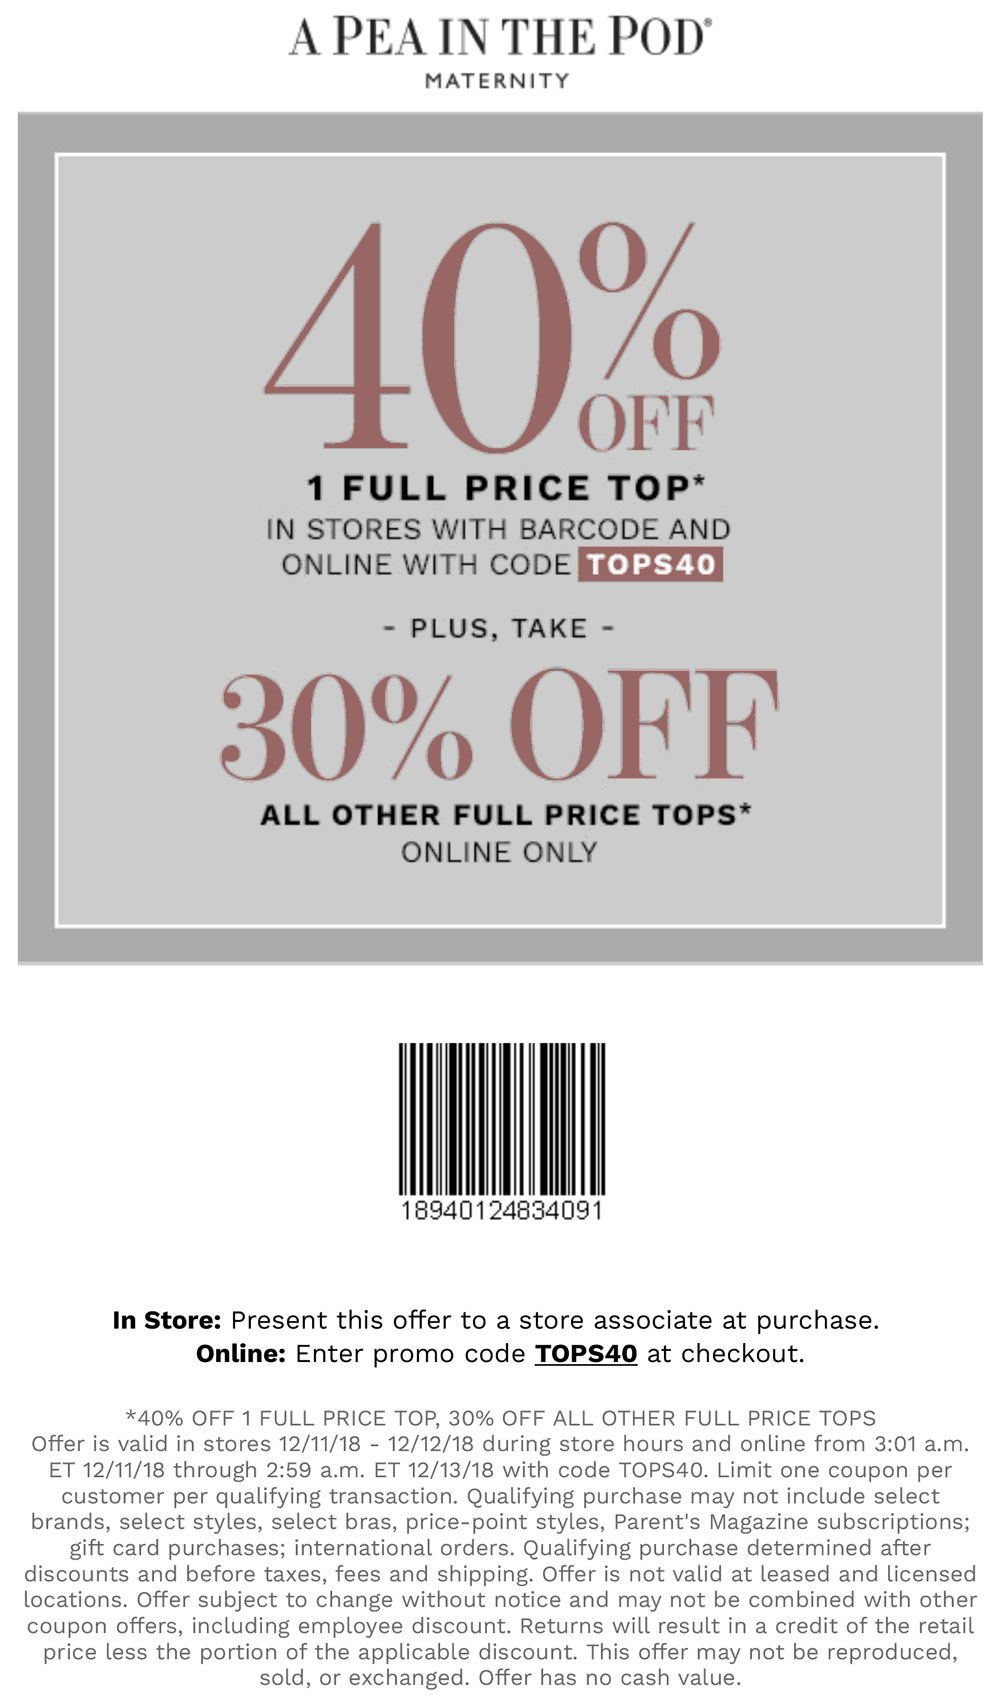 A Pea in the Pod Coupon April 2019 40% off a single top today at A Pea in the Pod maternity, or online via promo code TOPS40